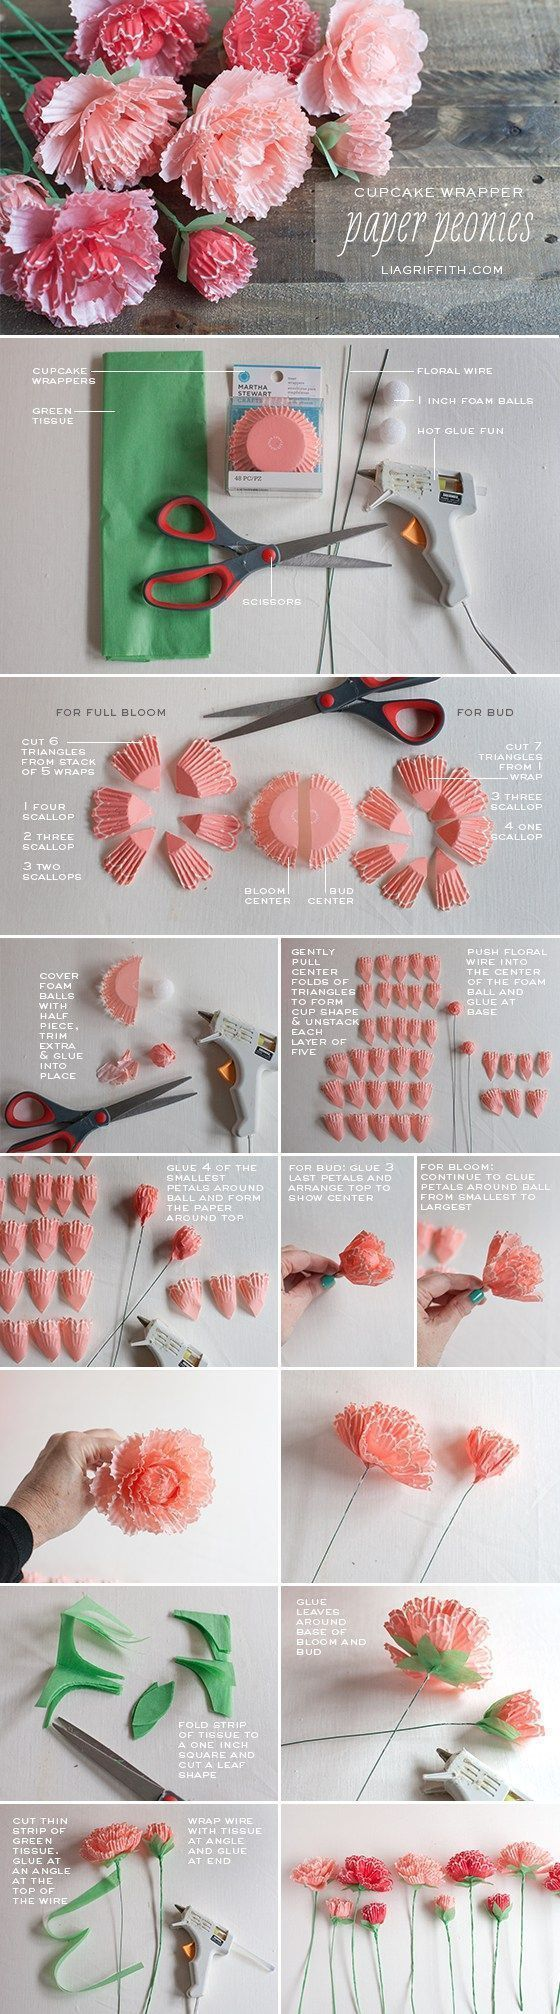 Cupcake Wrapper Peonies - Make Her Some Fabulous Mothers Day Flowers That Last Forever!